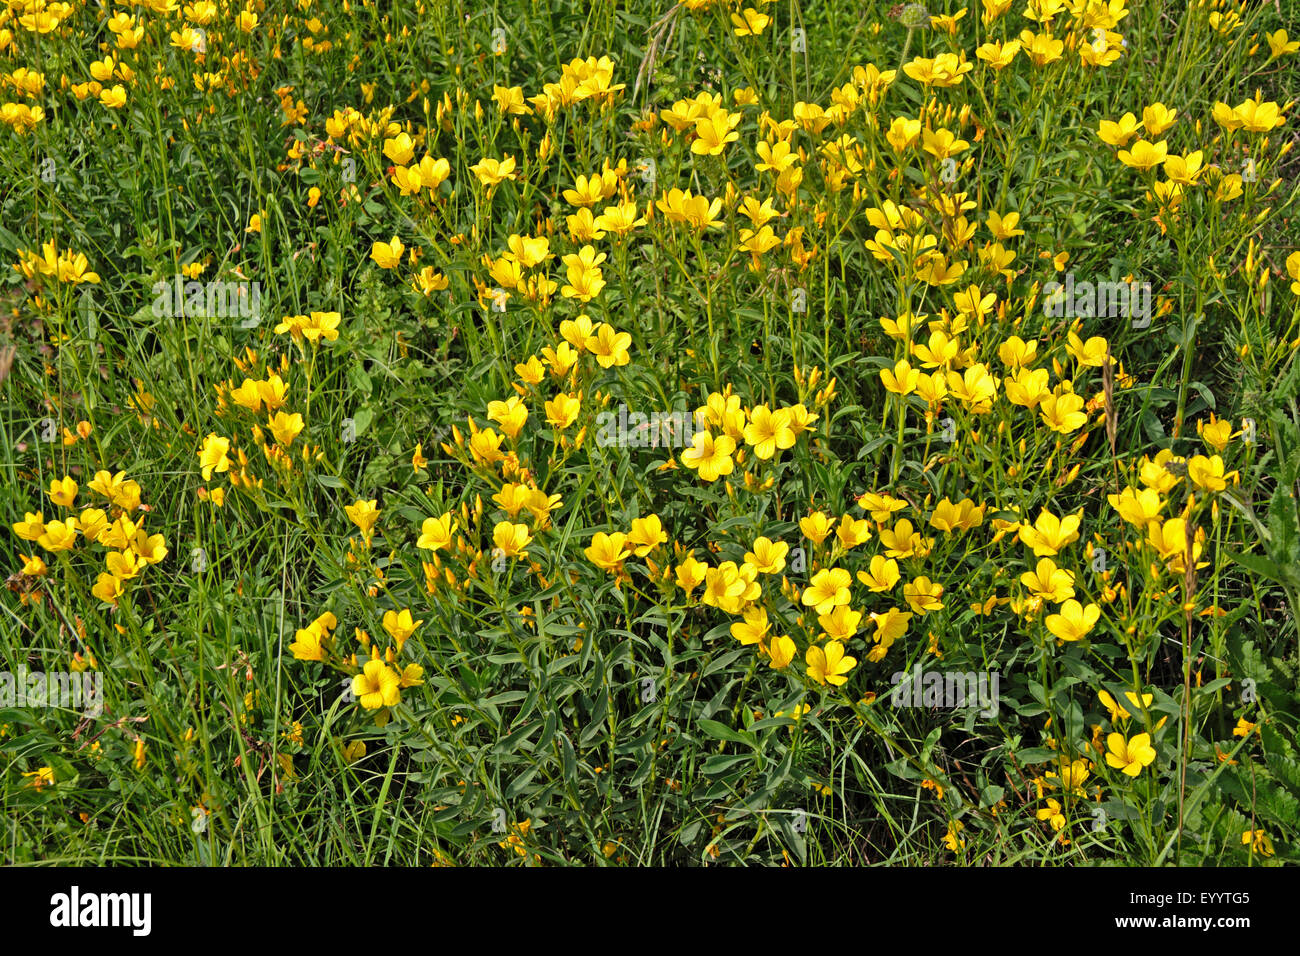 Yellow flowers golden flax linum stock photos yellow flowers golden flax yellow flax linum flavum blooming germany stock image mightylinksfo